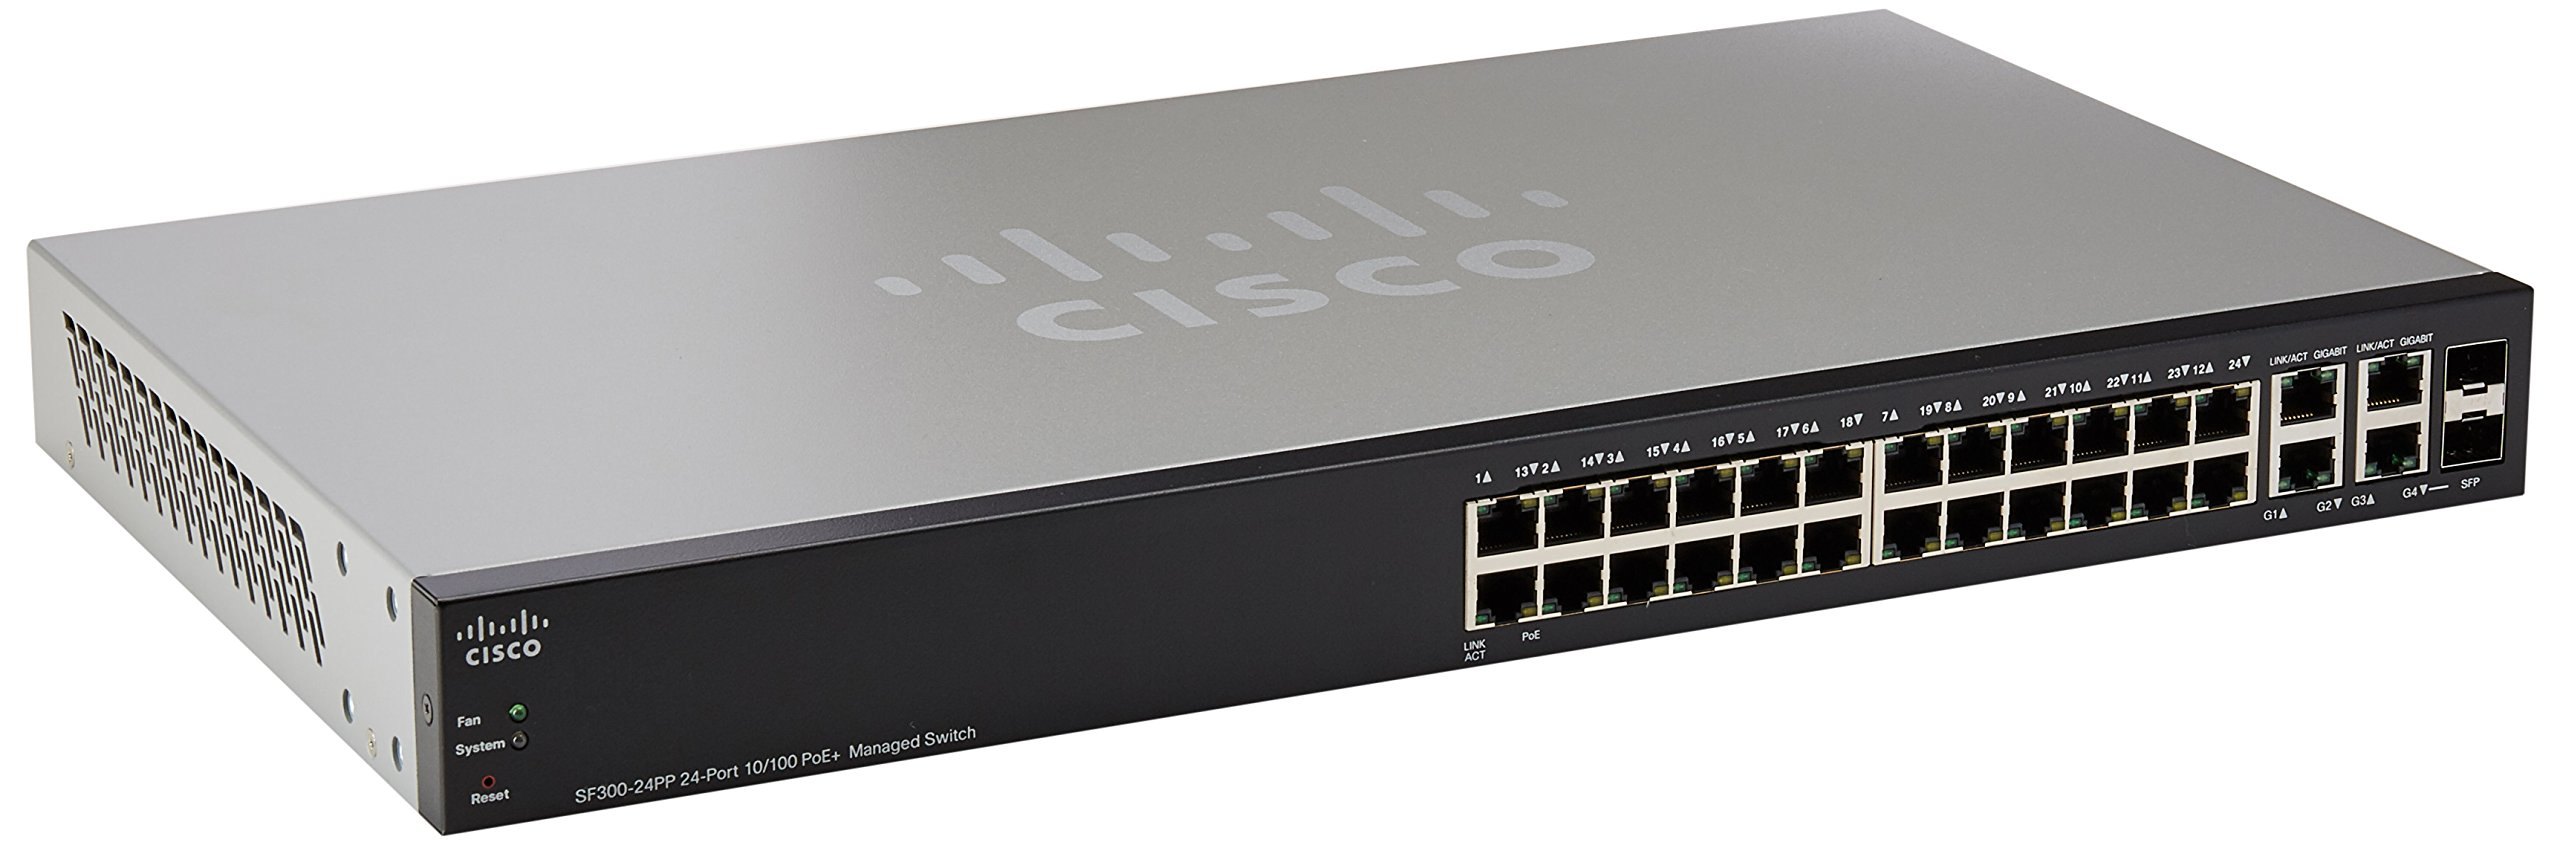 CISCO SF300-24PP 24-Port 10/100 PoE+ Managed Switch w/Gig Uplinks (SF300-24PP-K9-NA) by Cisco